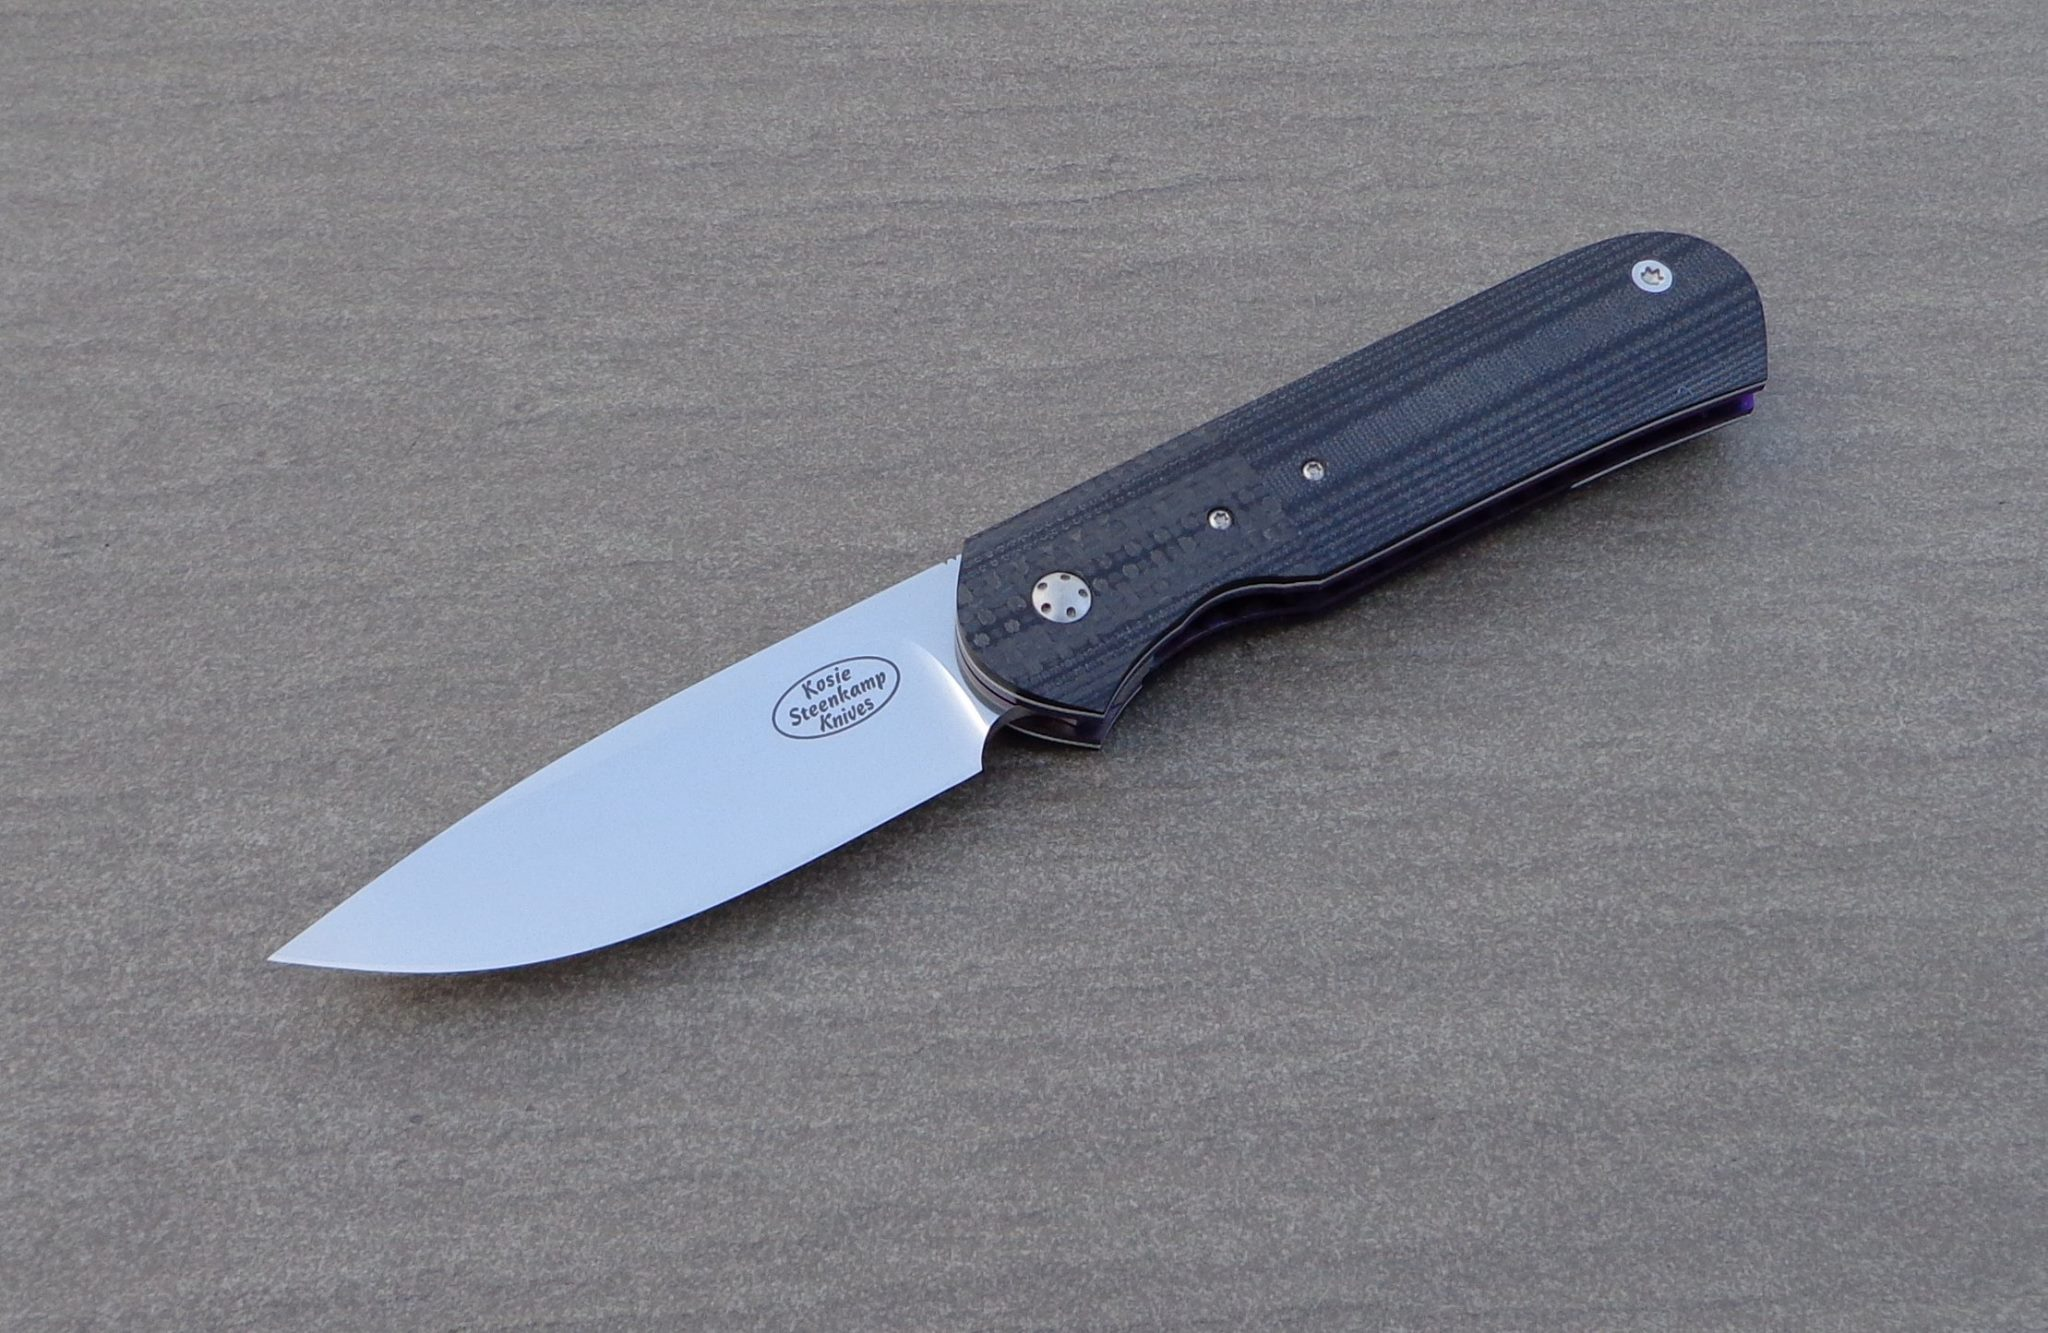 Knife: Samson Liner Lock. Blade: Böhler N690 Stainless Steel. Liners: Titanium, anodized blue. Handle scales: Carbon Fiber and G10 with anodized Titanium belt clip.